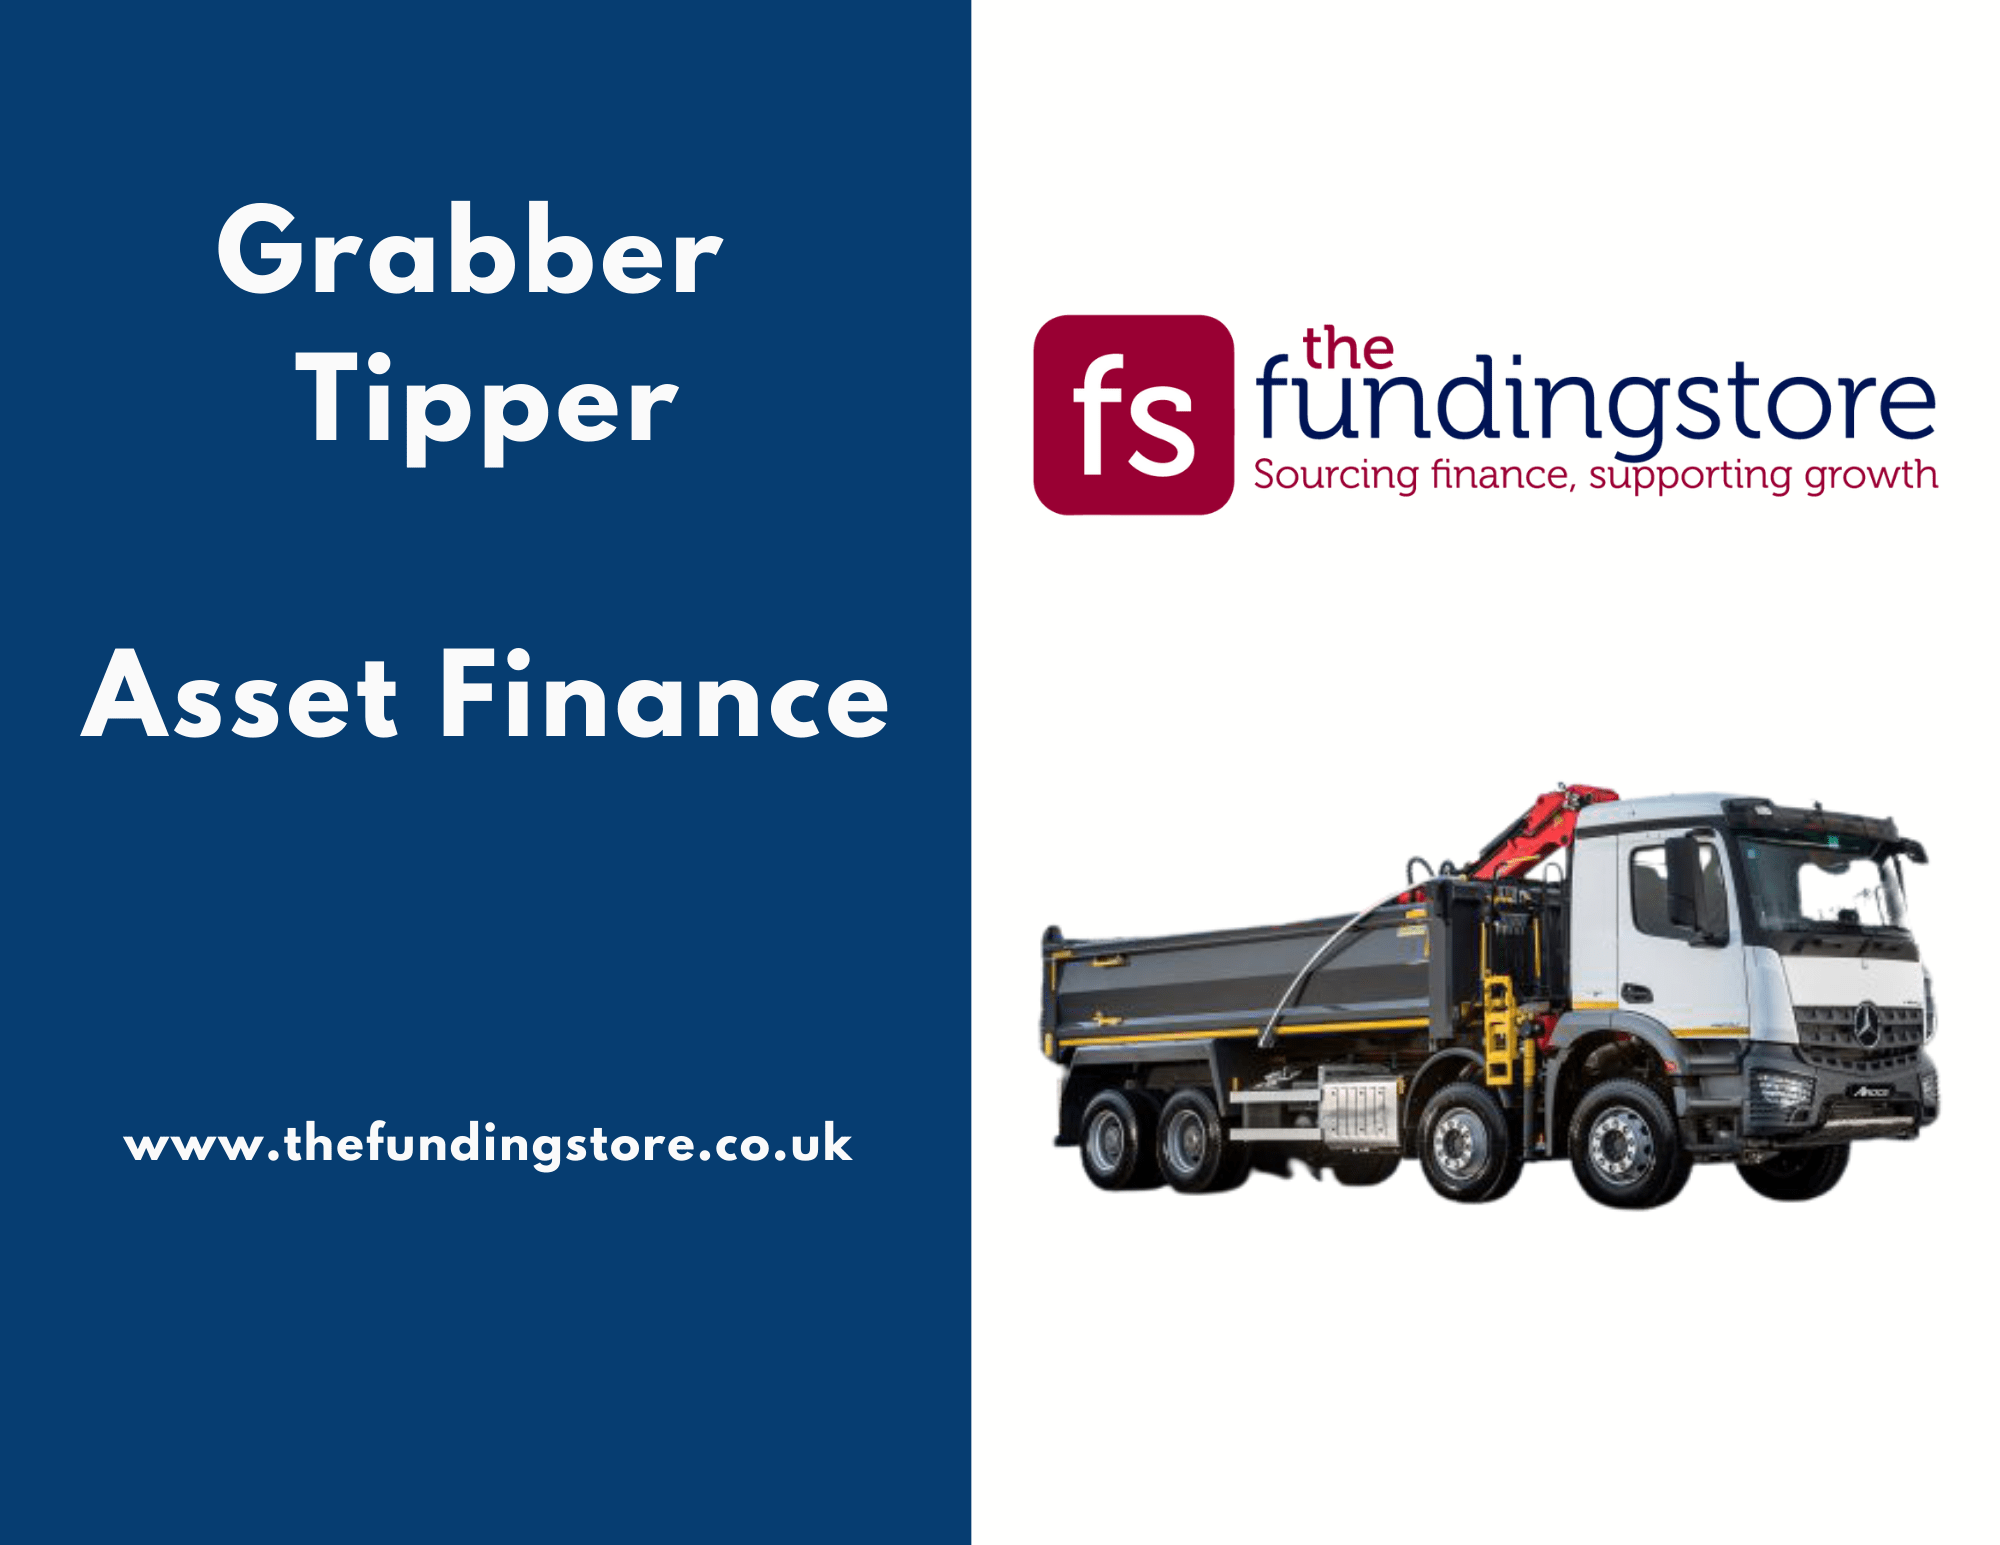 Civil engineering firm secures grabber tipper on asset finance The Funding Store